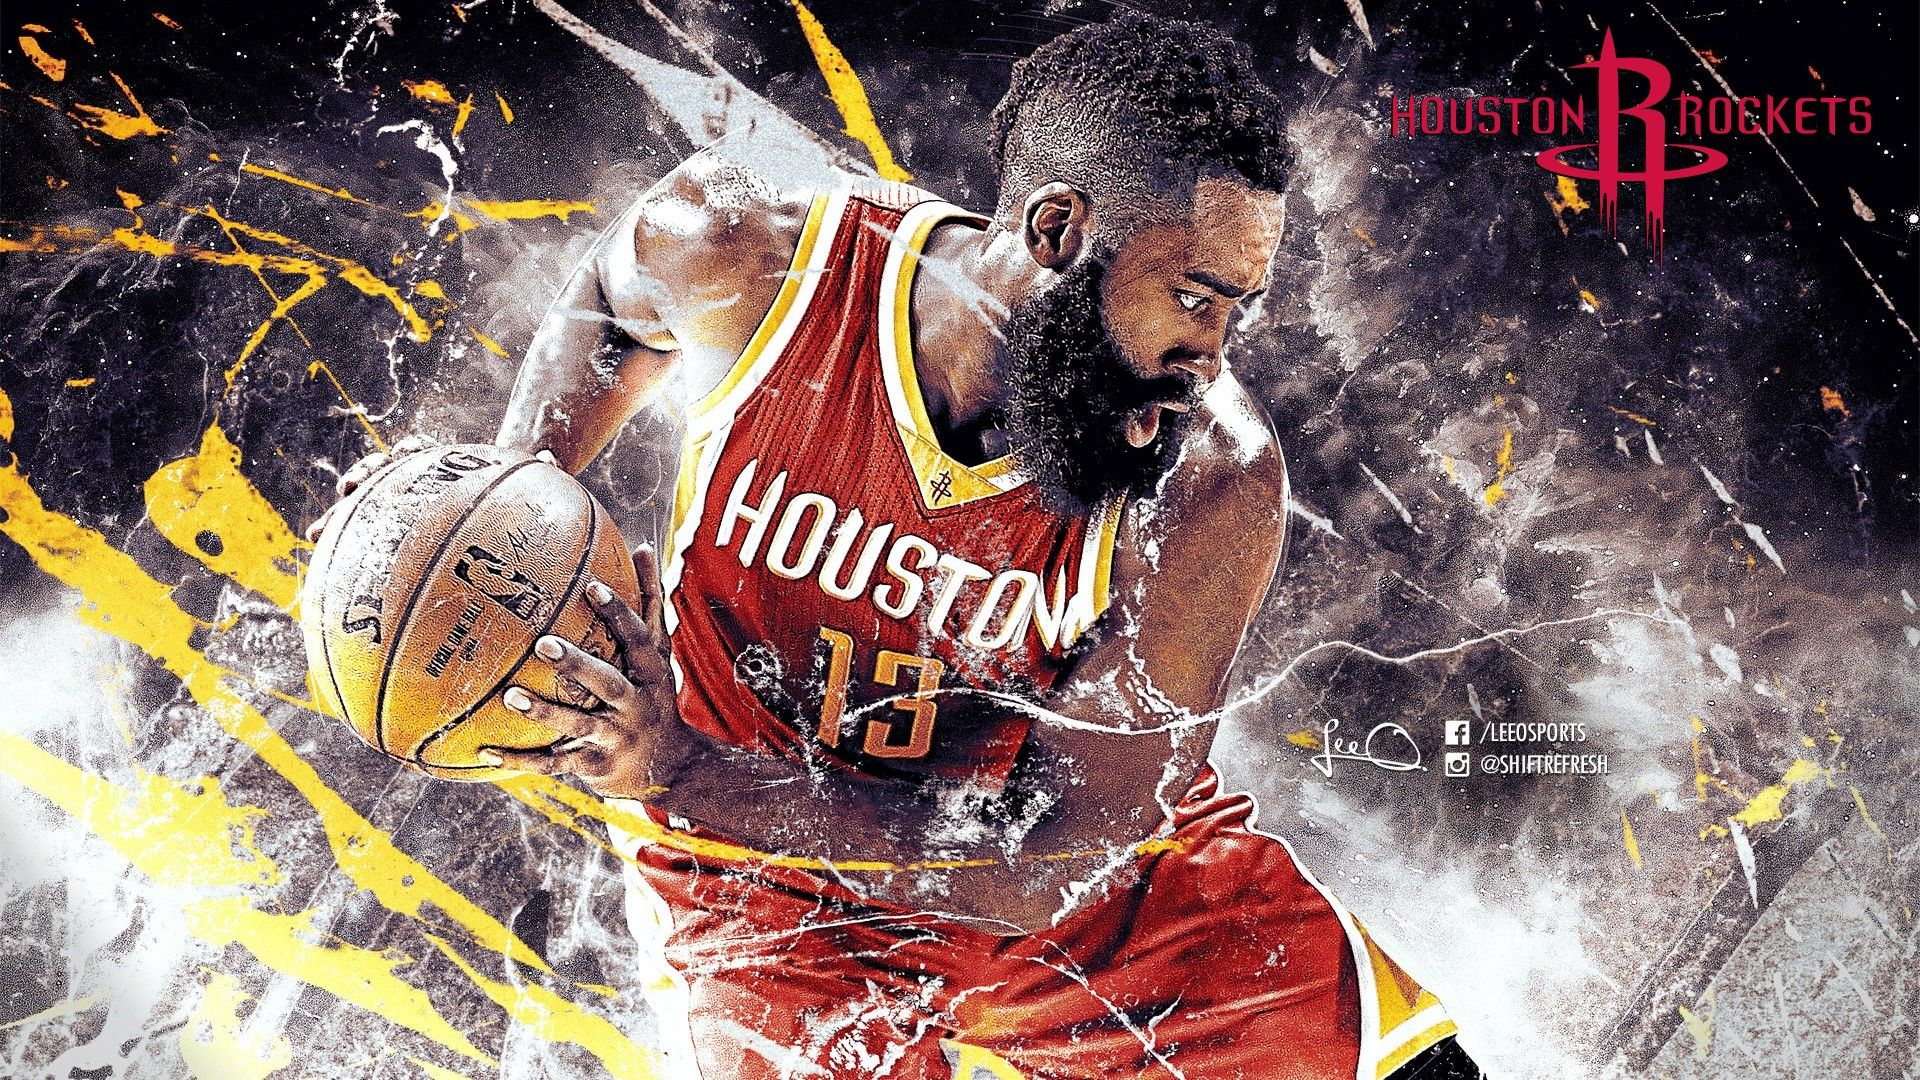 James Harden Beard Desktop Wallpapers James Harden Basketball Wallpapers Hd Basketball Wallpaper